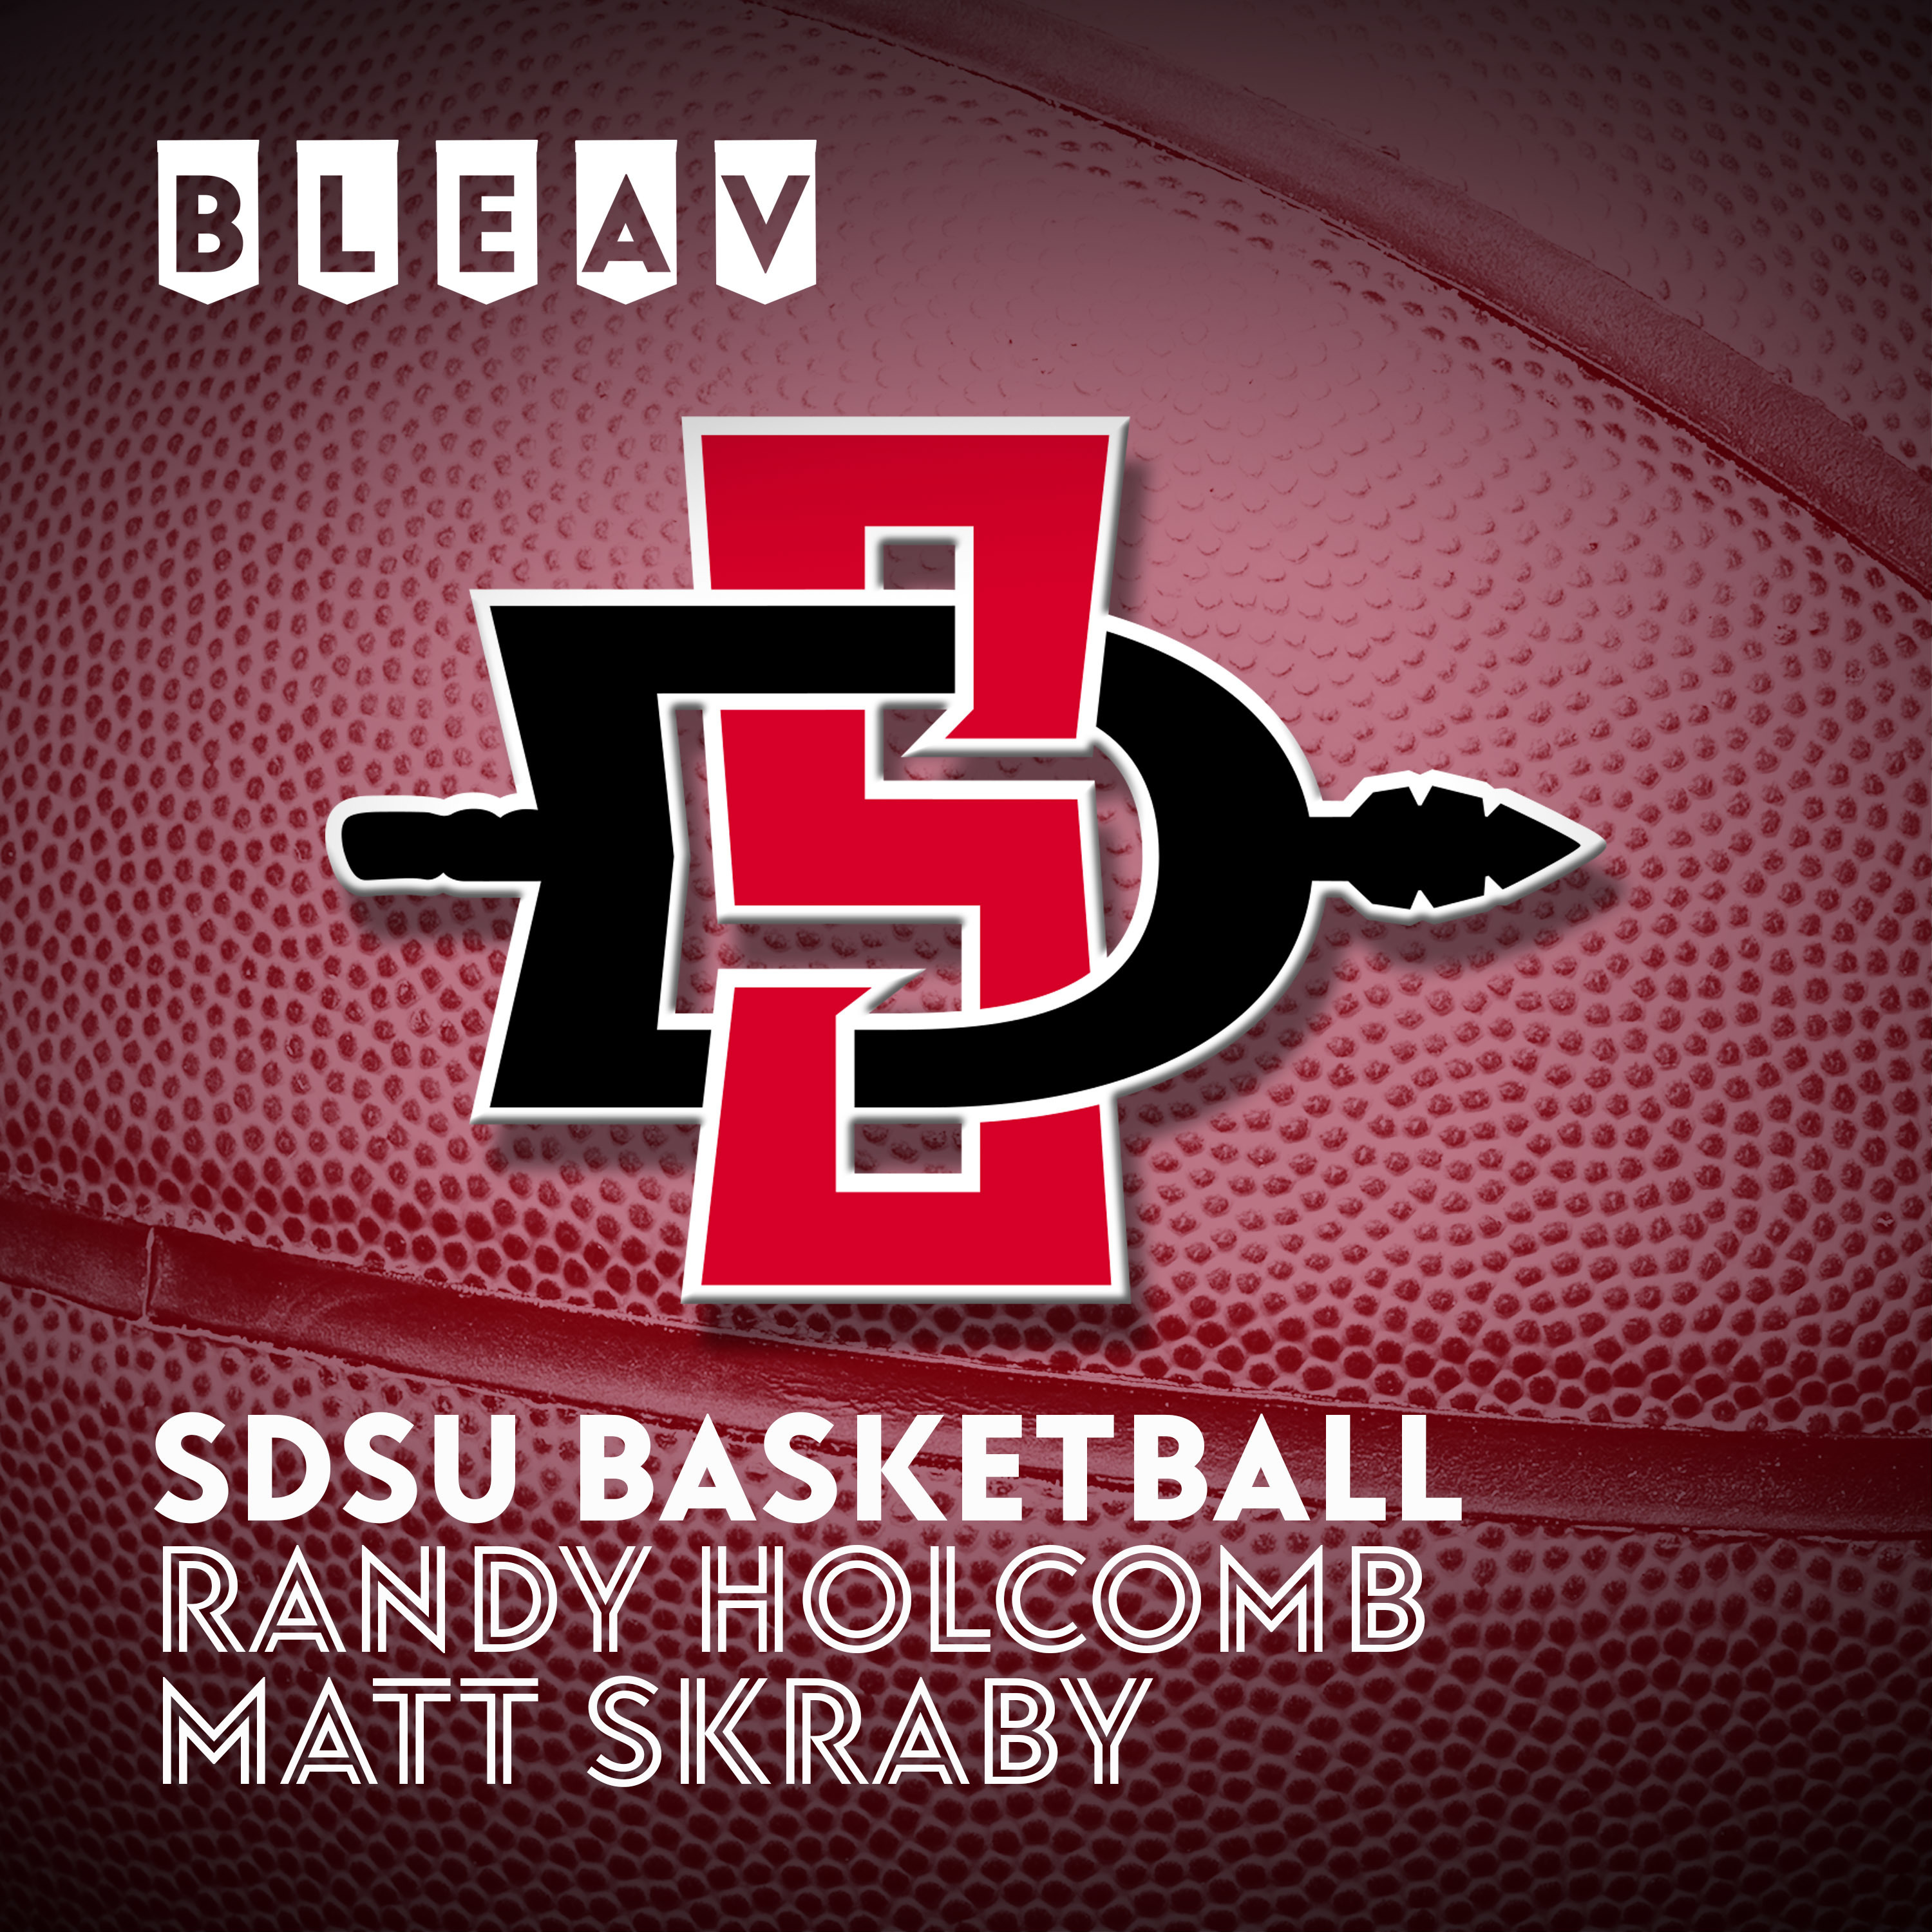 Aztecs basketball has an unexpected week off after New Mexico cancels games